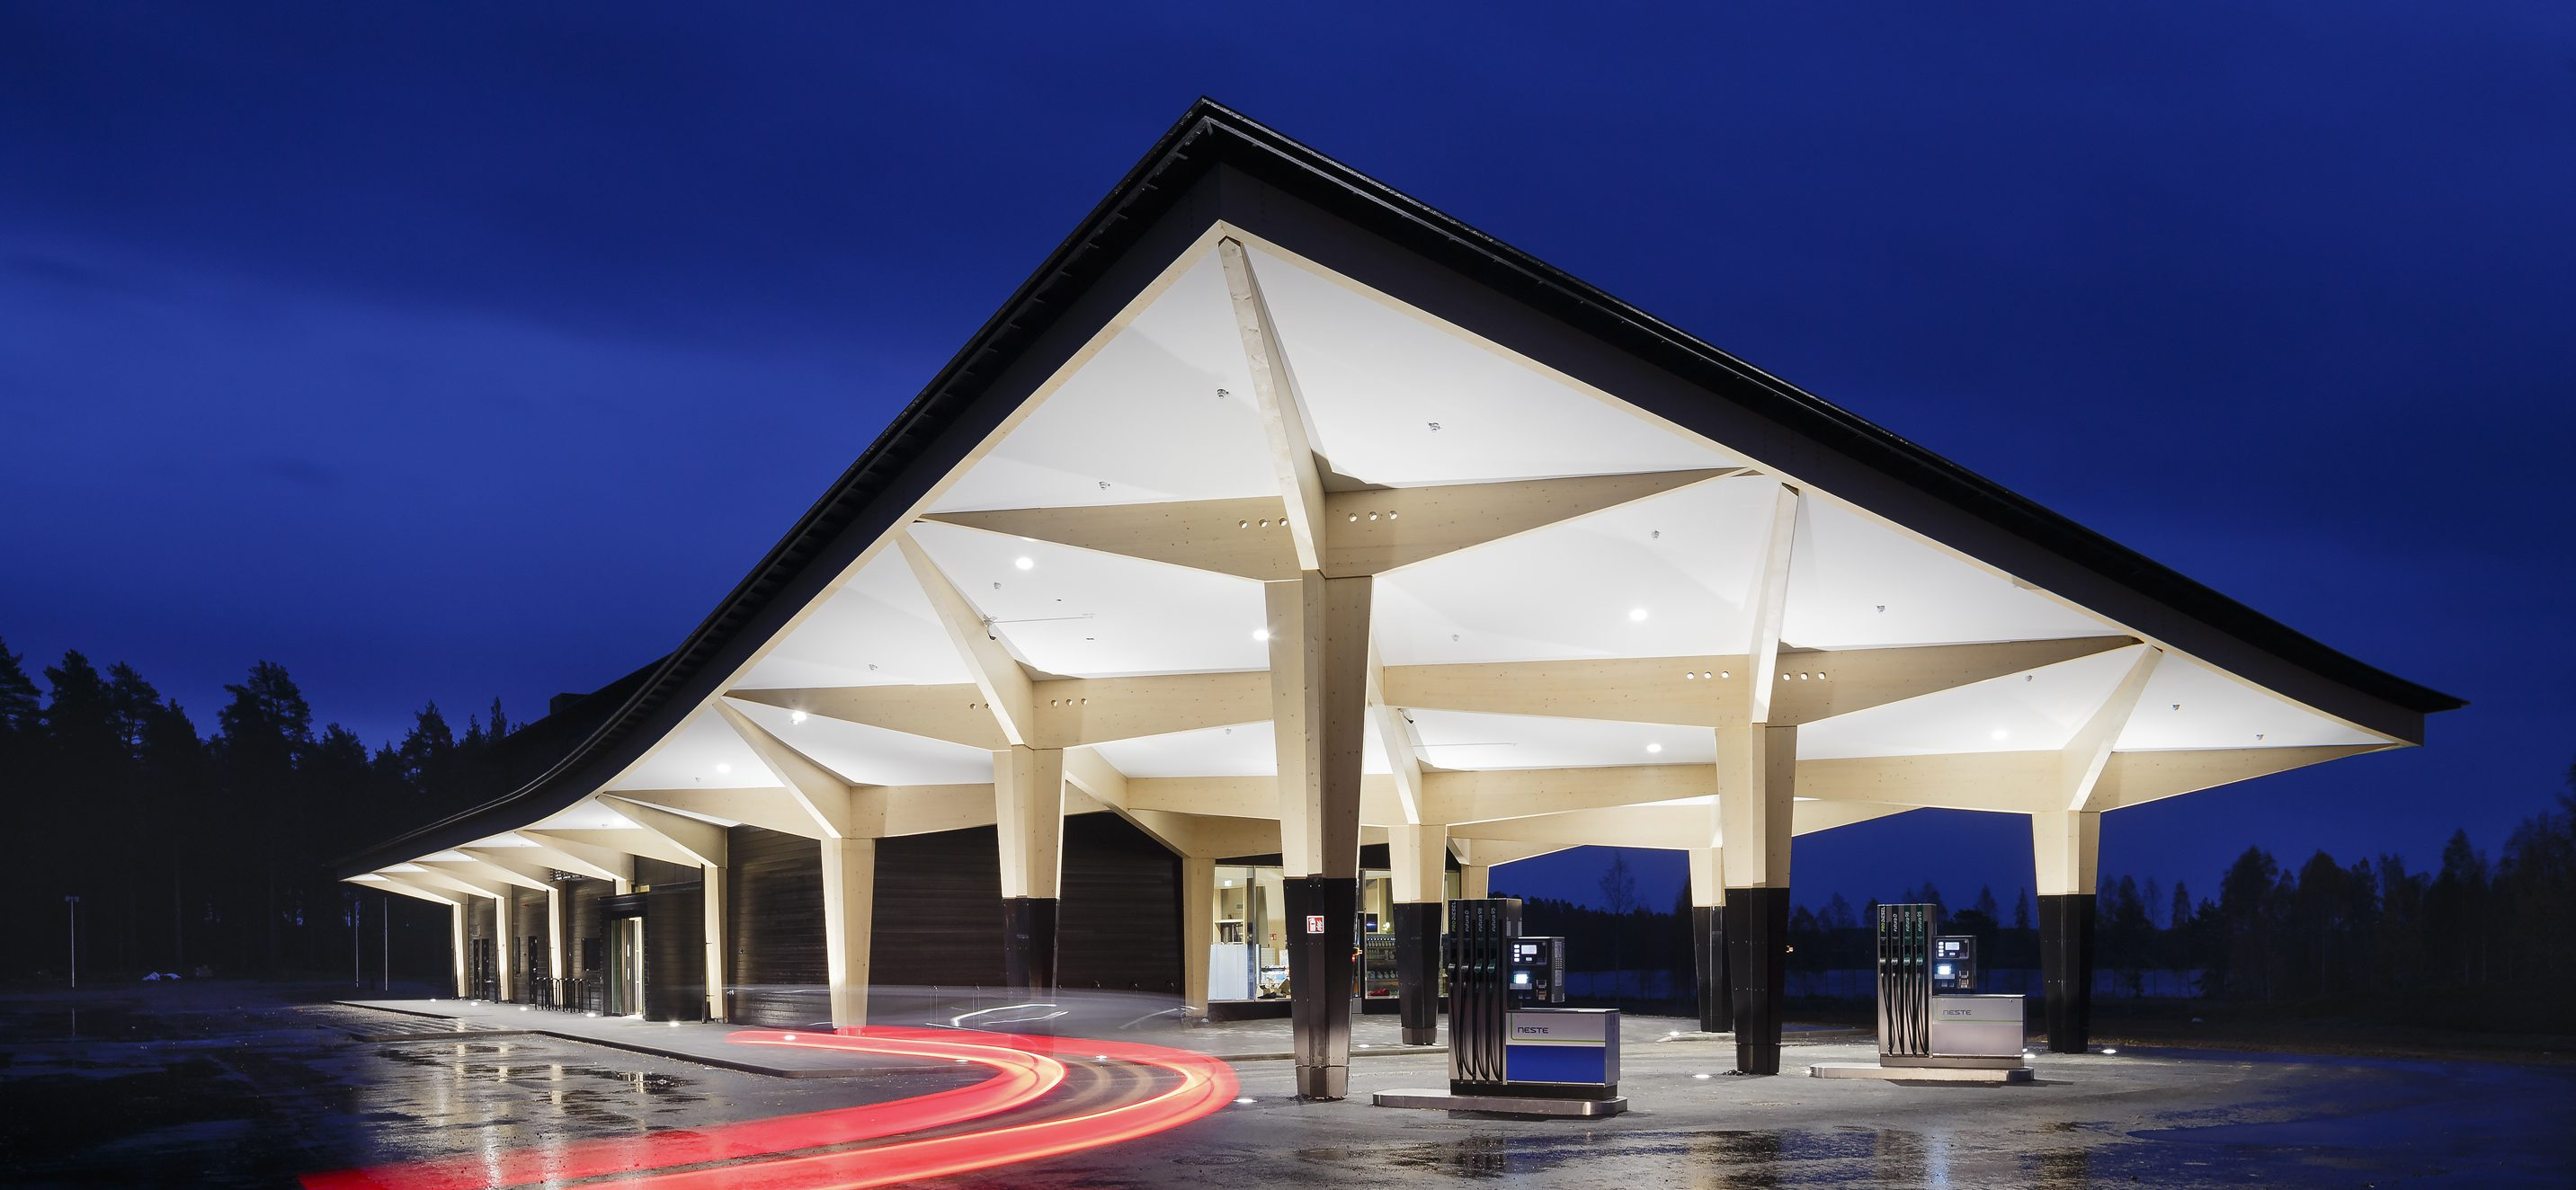 The 10 most beautiful gas stations in the world ranked quartz architects have identified the 10 most beautiful gas stations in the world friedricerecipe Image collections